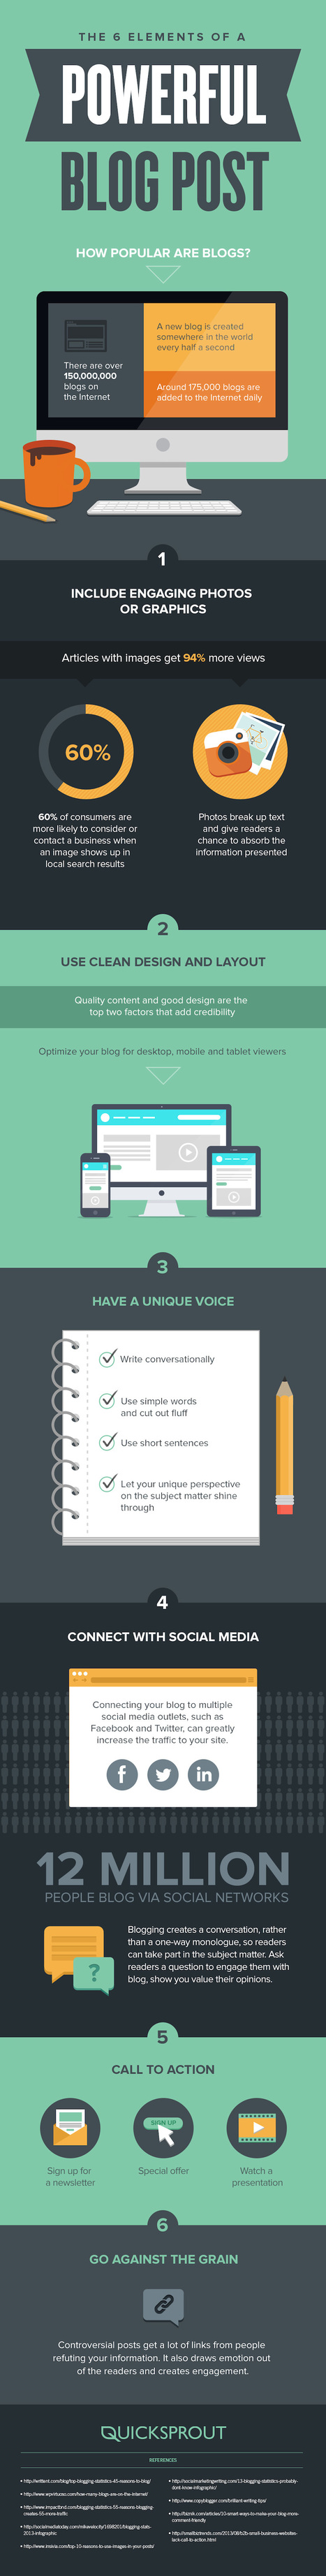 The 6 Elements Of A Powerful Blog Post [INFOGRAPHIC] - AllTwitter | Litteris | Scoop.it